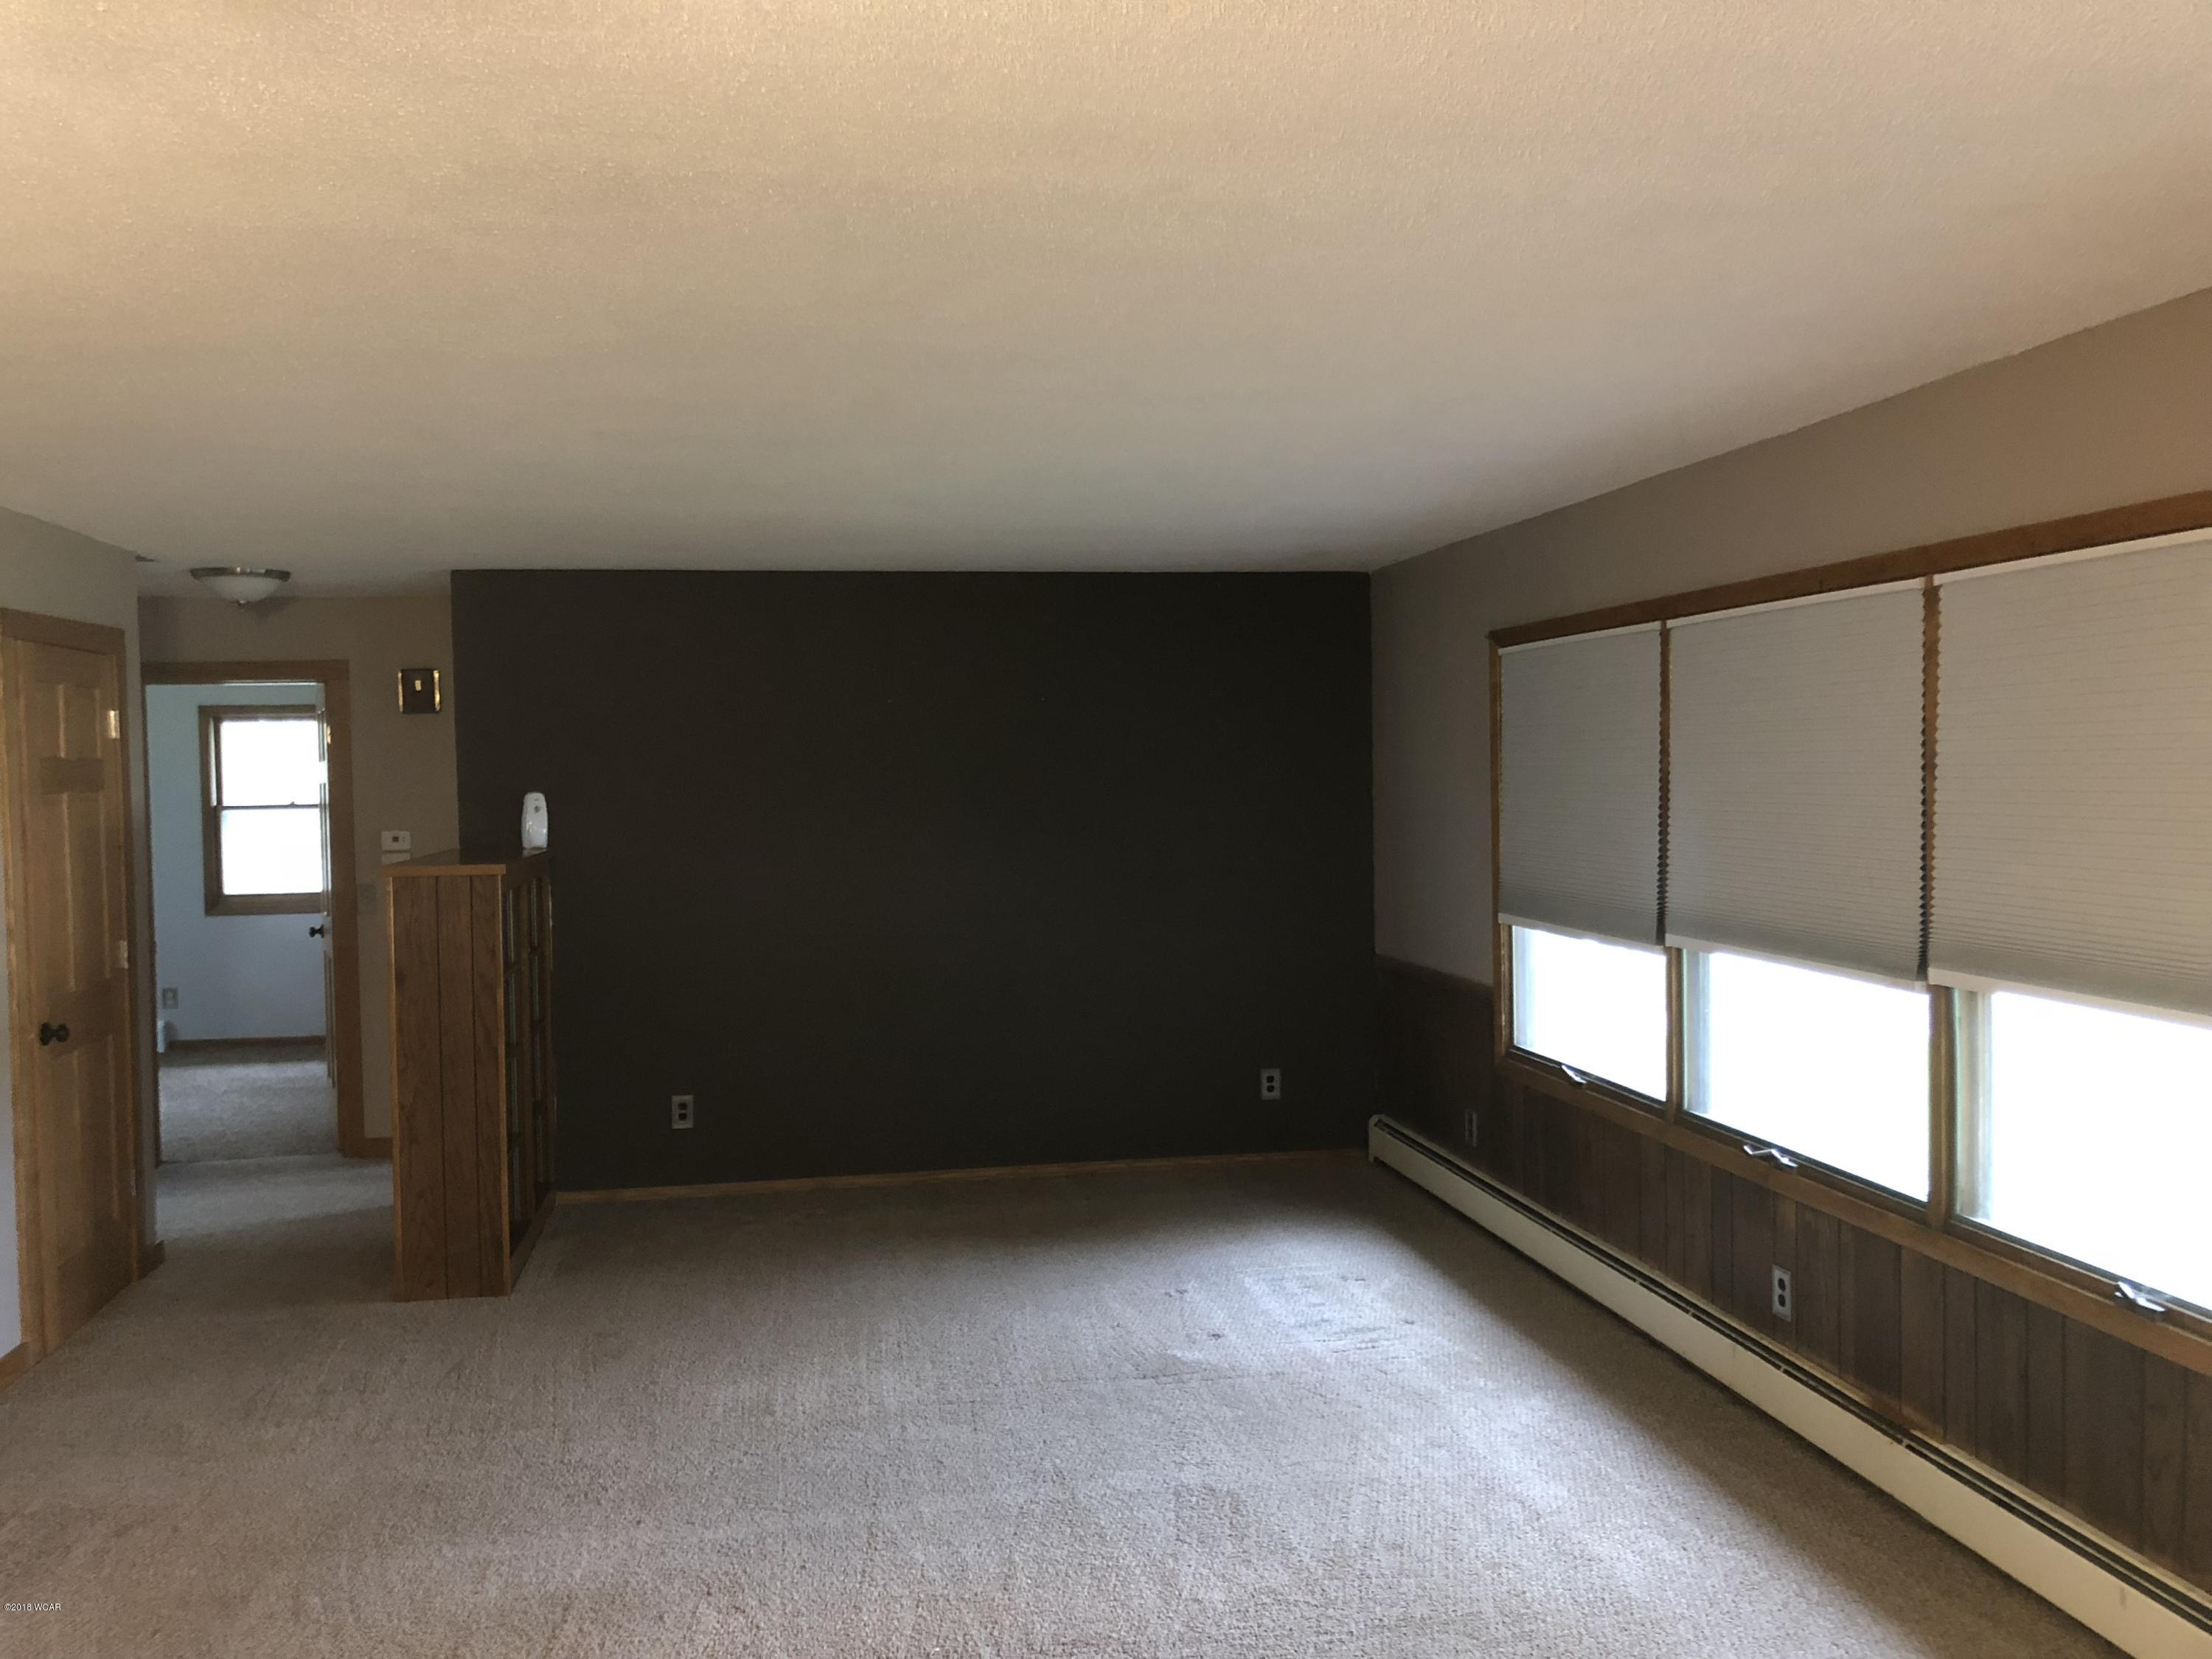 3041 Highway 12,Willmar,3 Bedrooms Bedrooms,2 BathroomsBathrooms,Single Family,Highway 12,6032343